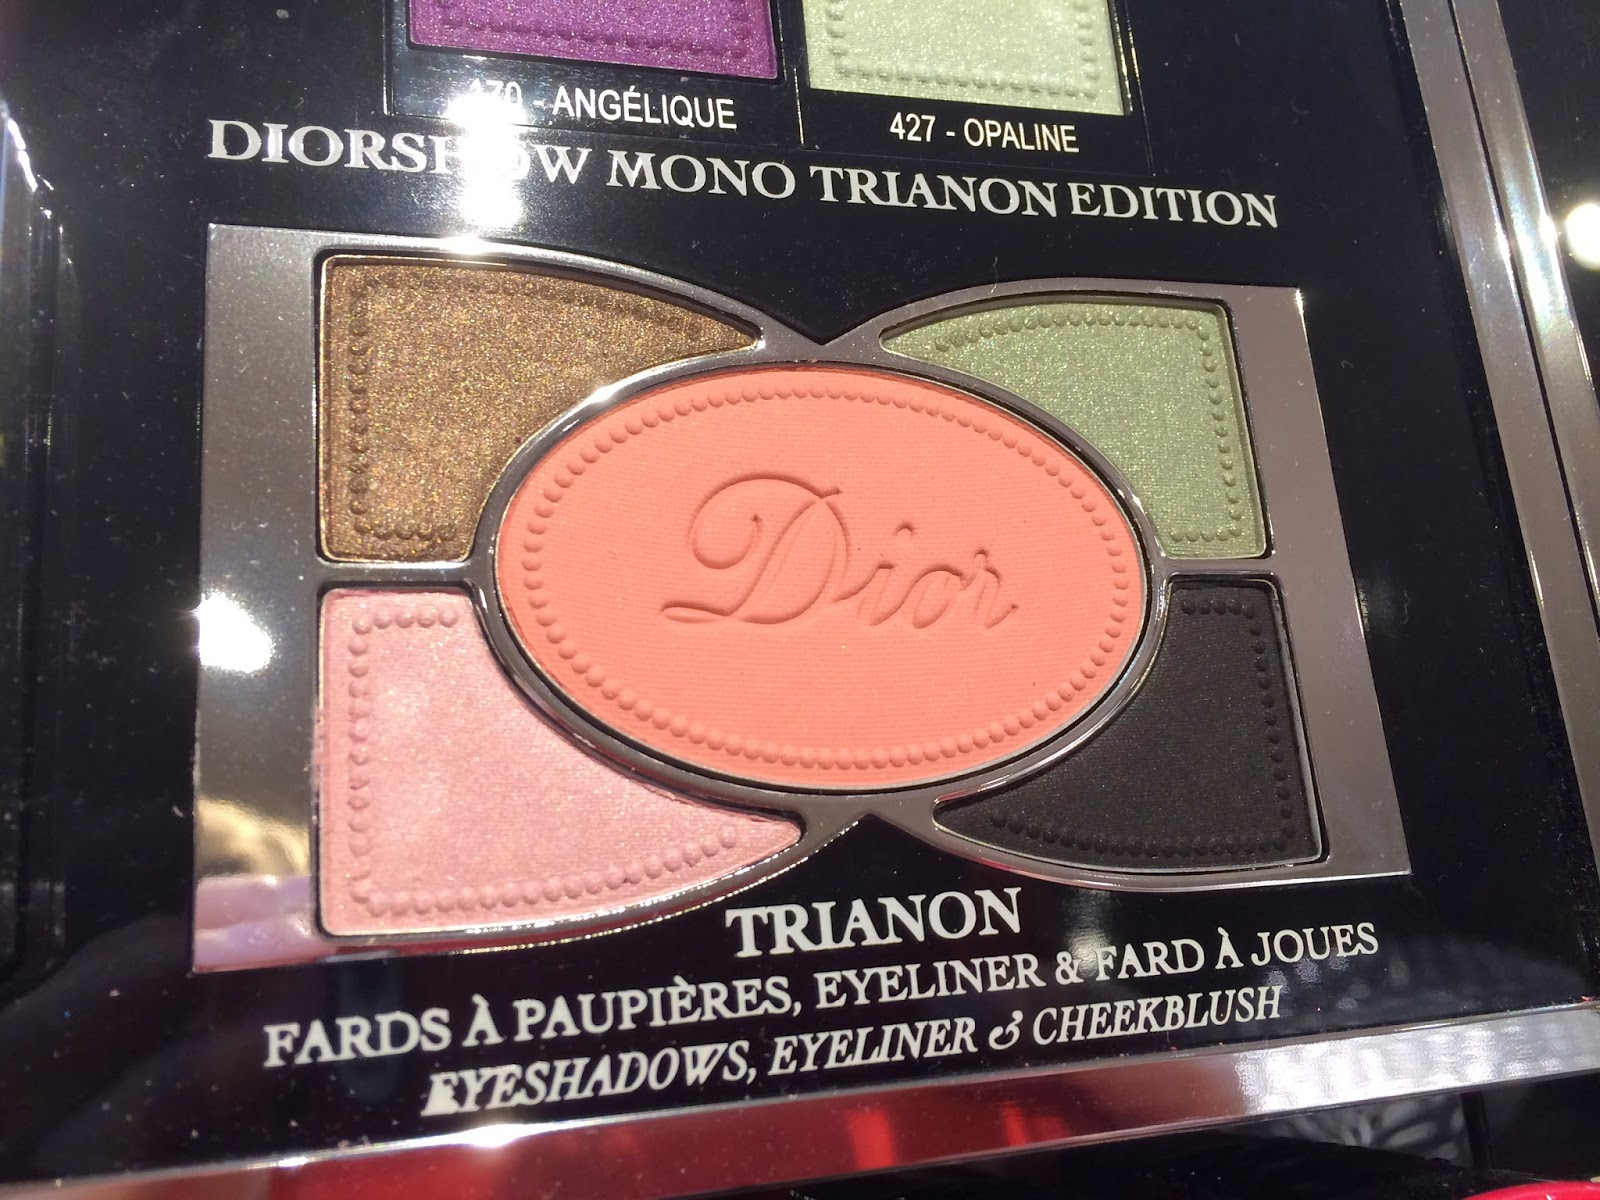 Dior makeup Trianon